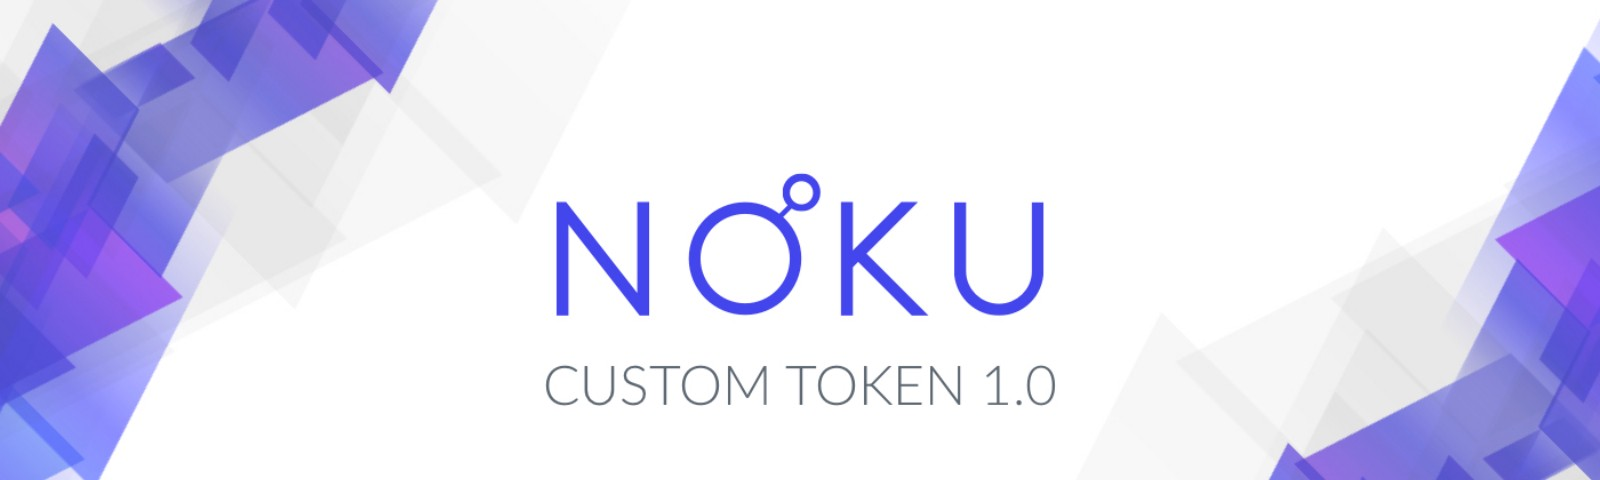 NOKU Master token description